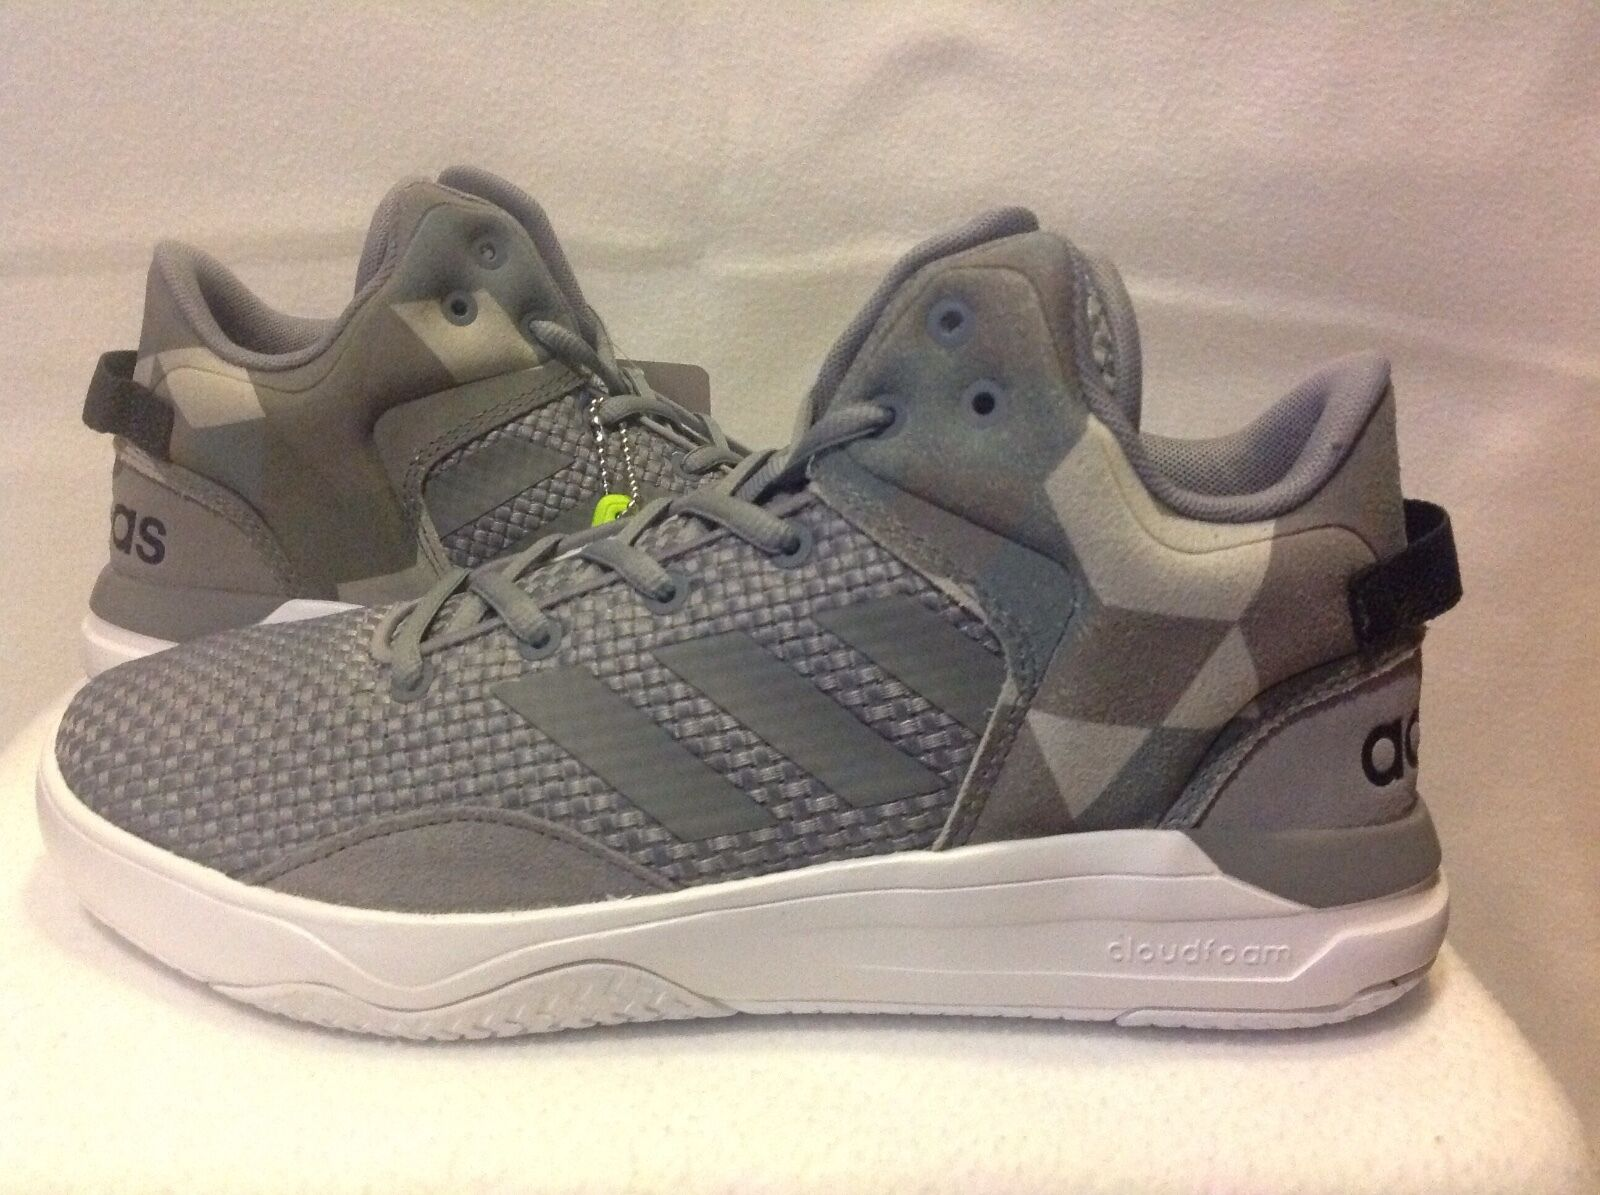 Men's Adidas Cloudfoam Revival Mid - Grey - Width: med - Basketball The most popular shoes for men and women